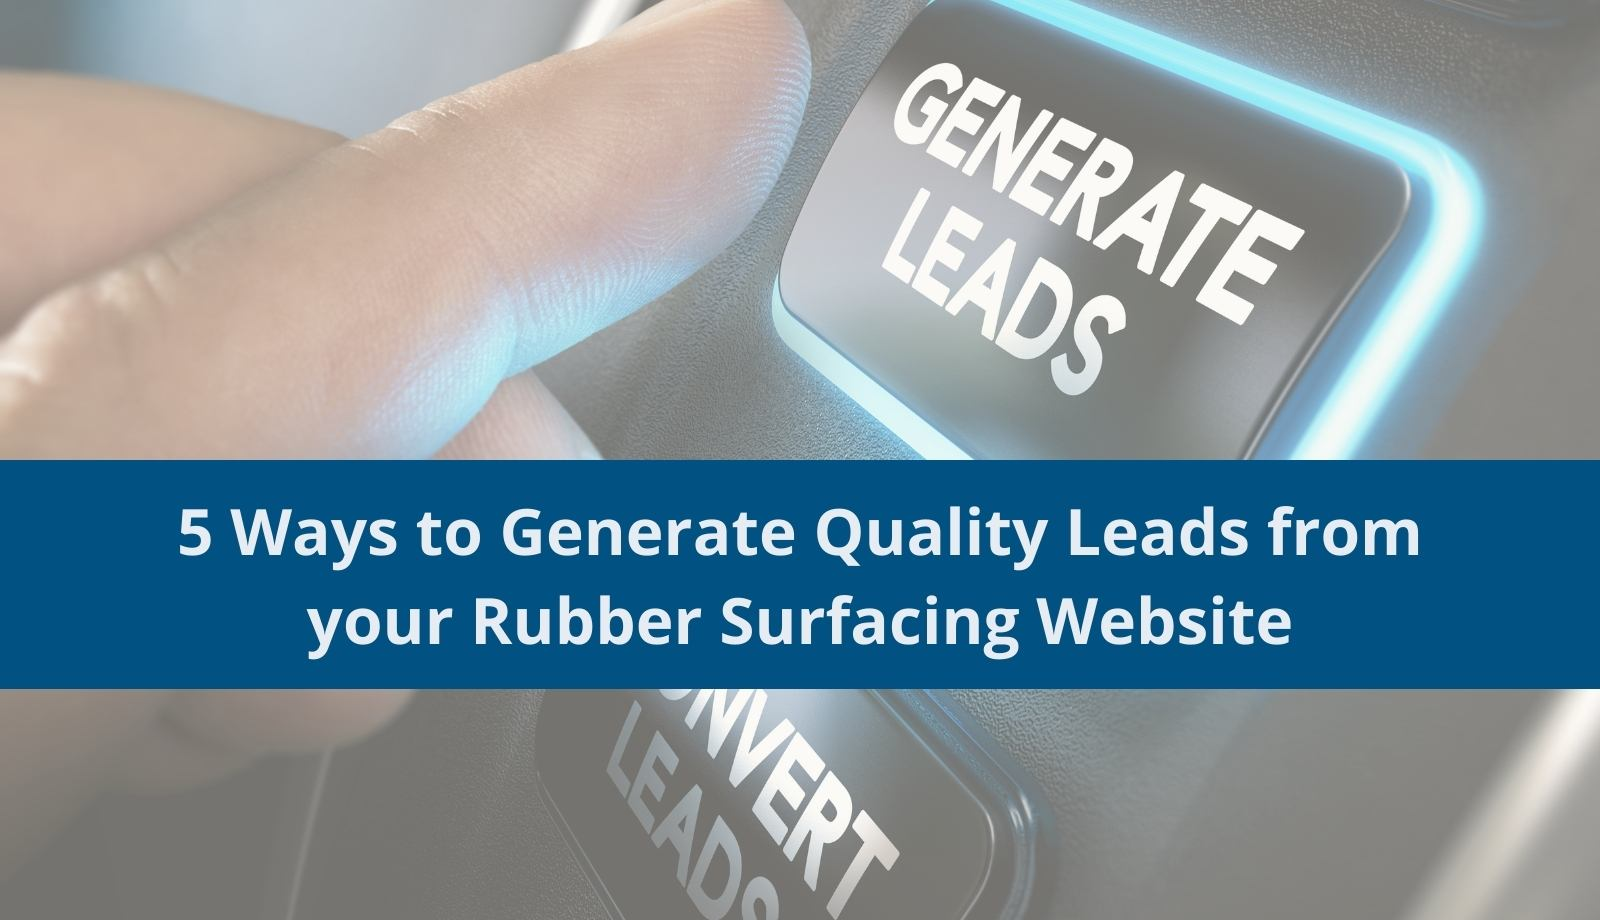 5 Ways to Generate Quality Leads from your Rubber Surfacing Website